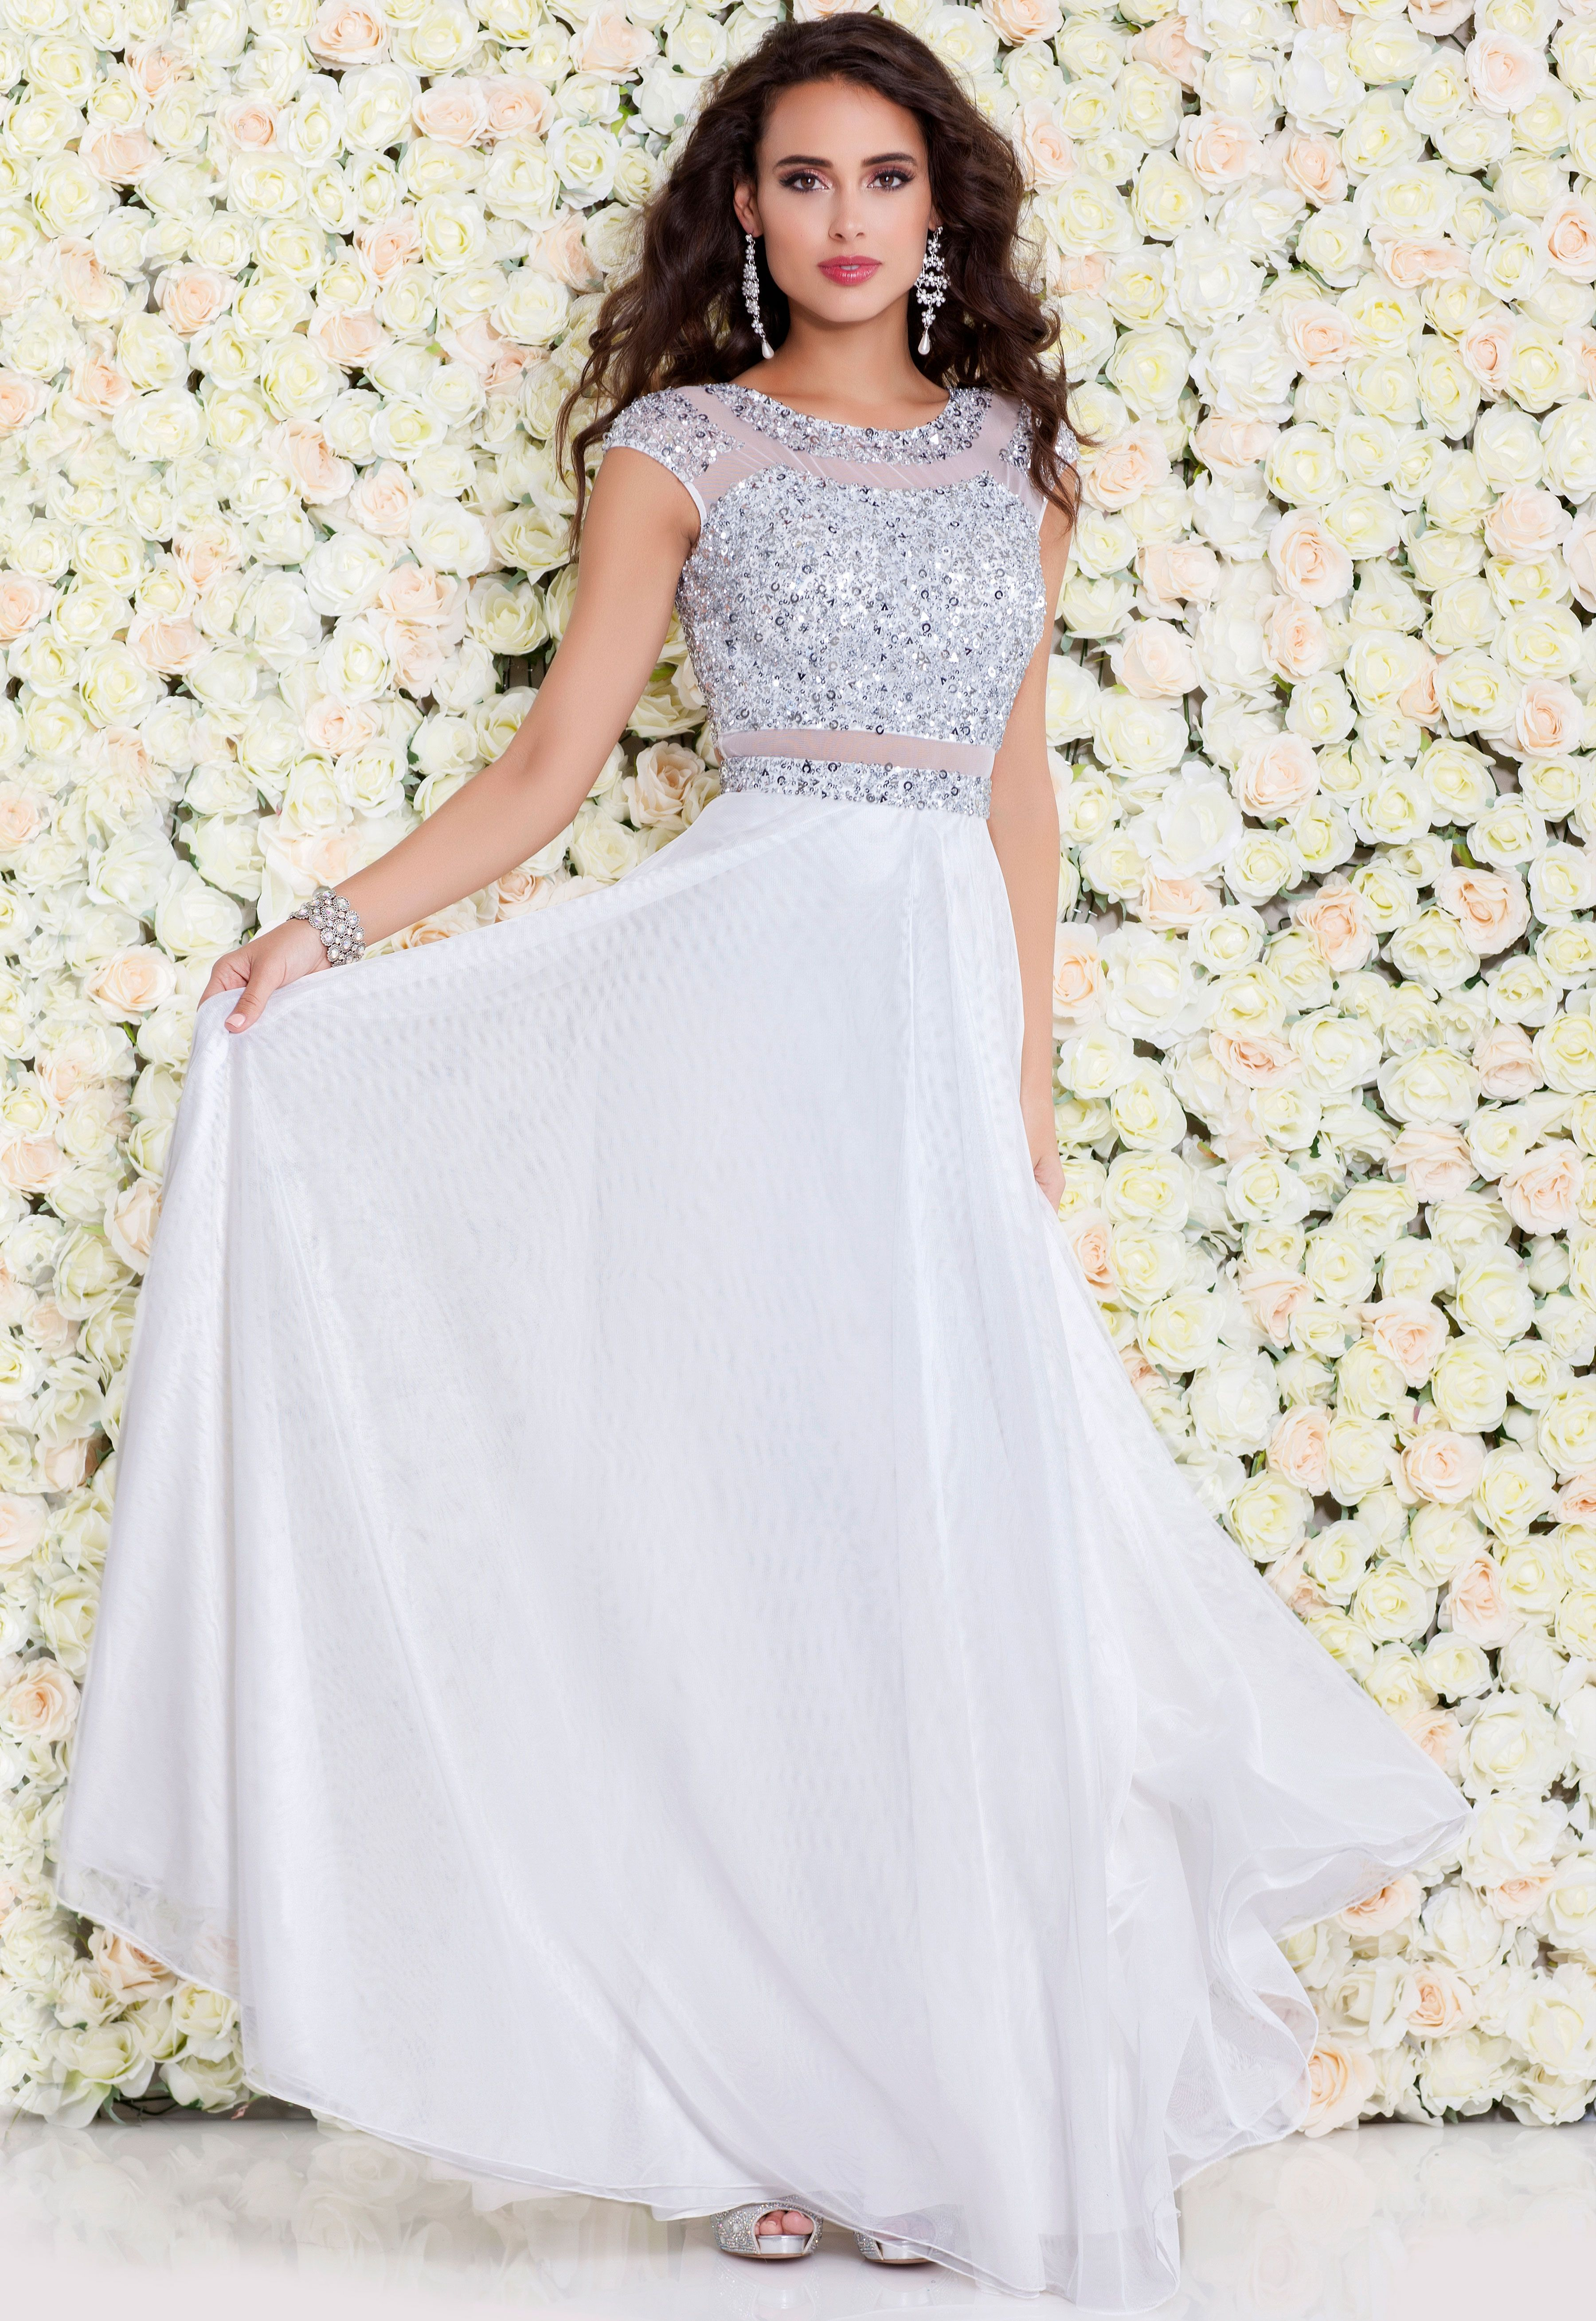 Dream Gowns Prom Dresses | Wedding Gallery